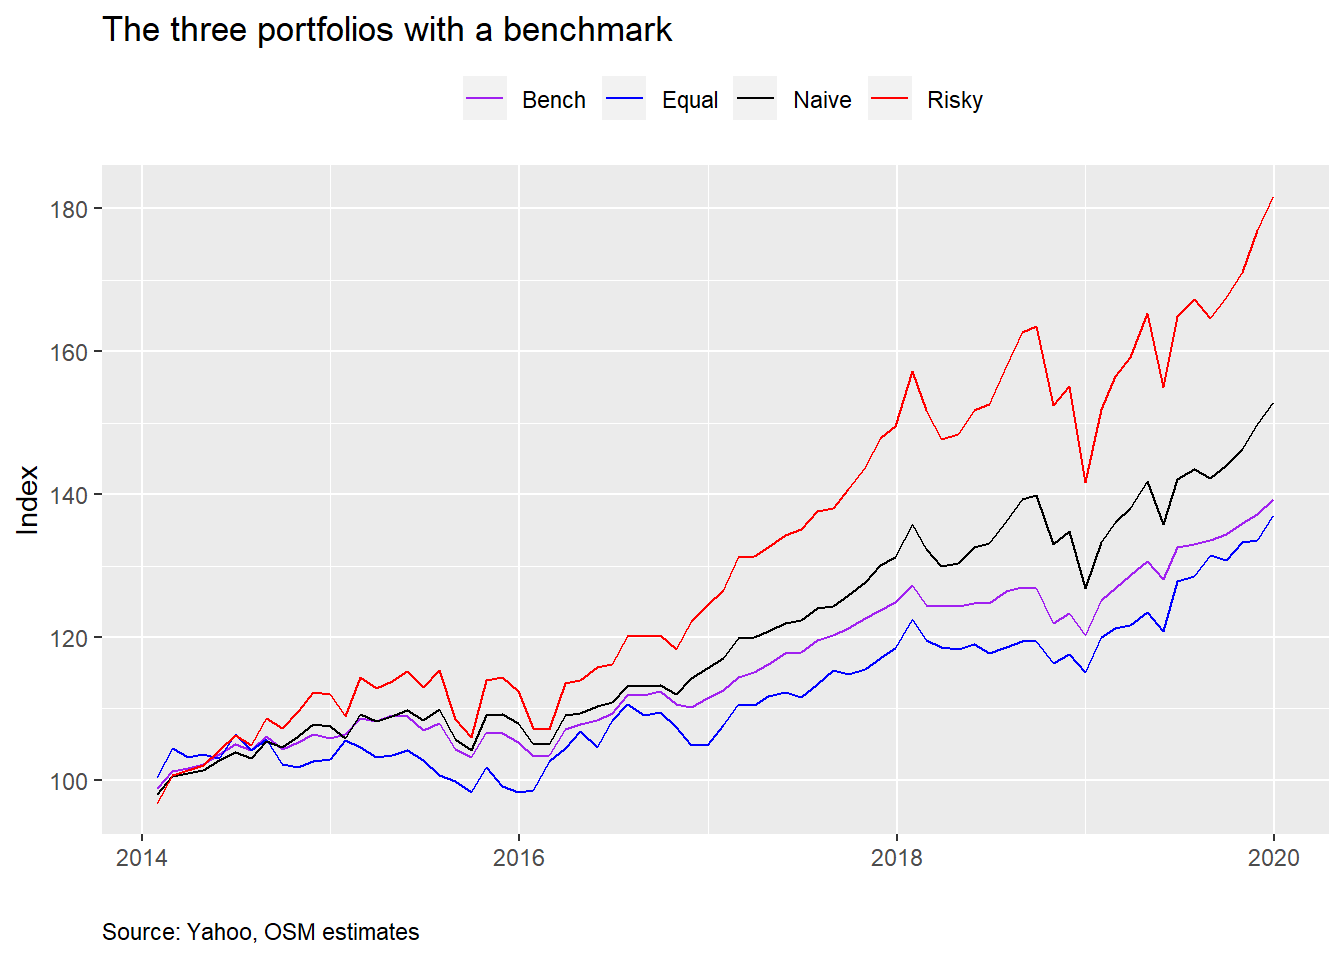 Benchmarking the portfolio